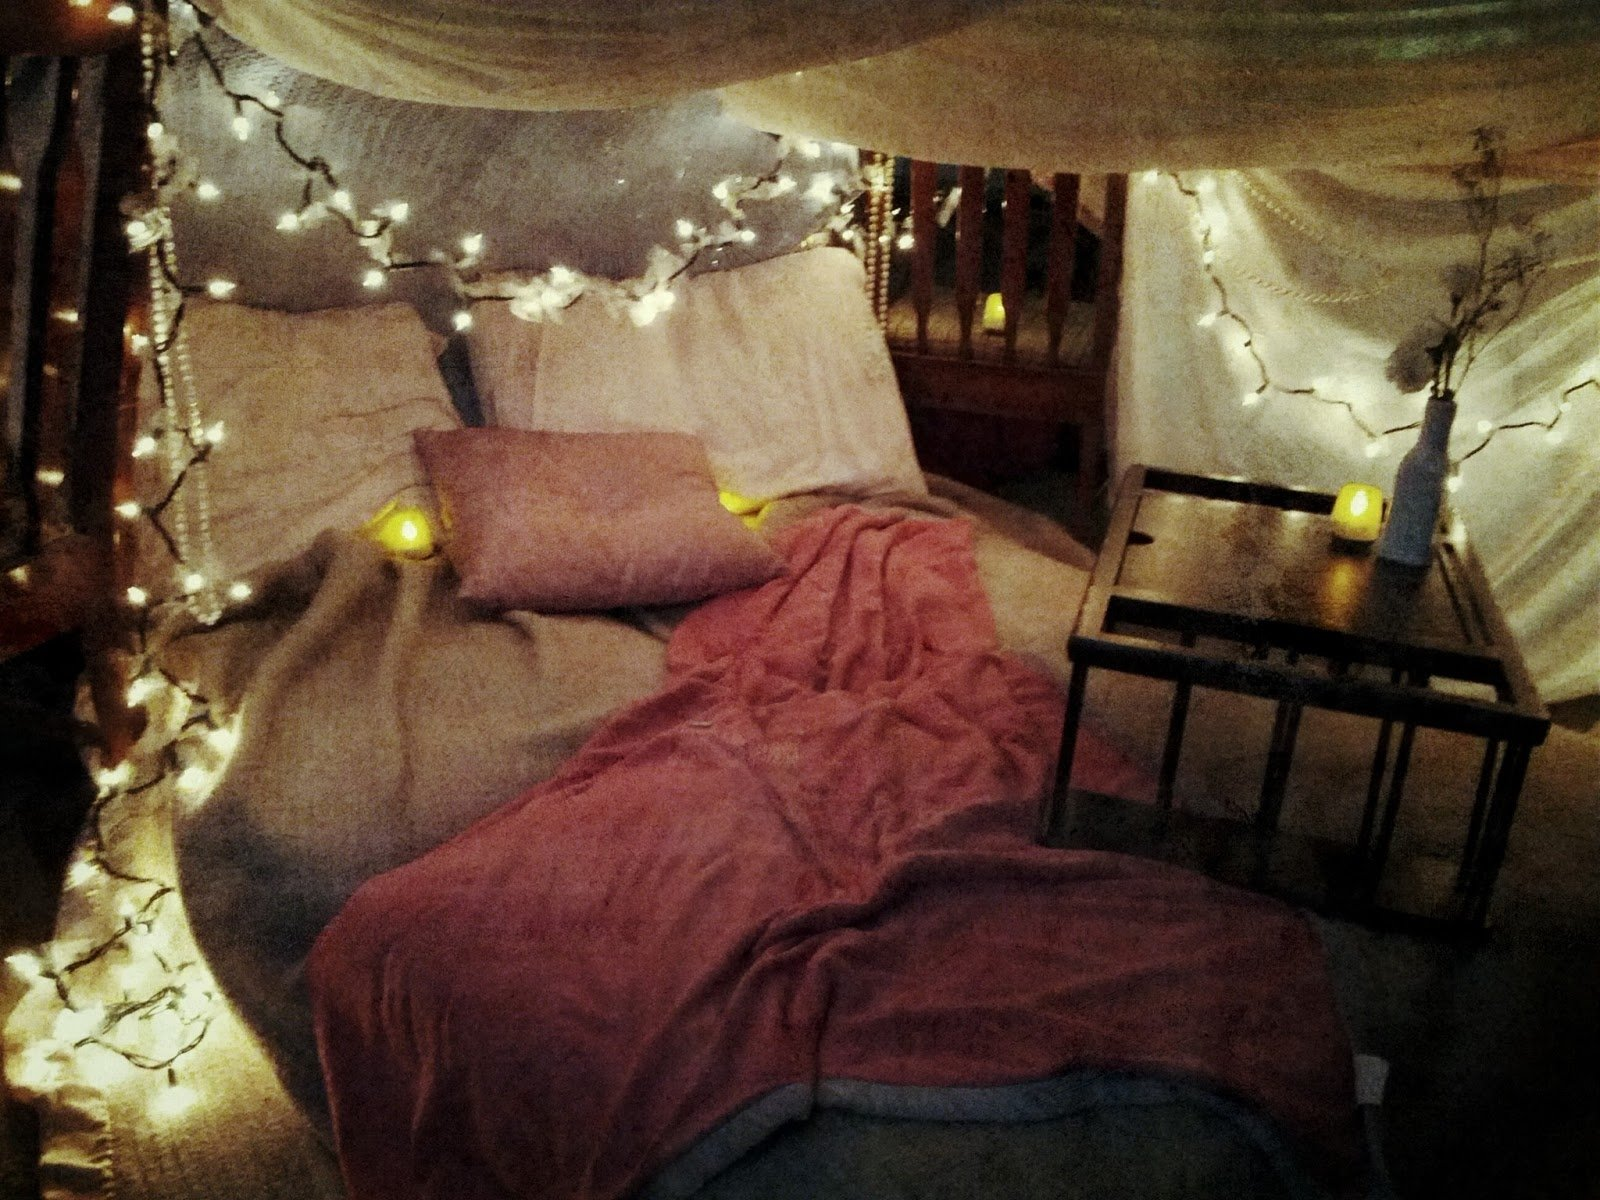 10 Trendy Romantic Ideas For Her At Home passion pink pearls date night idea grown up tent 2020